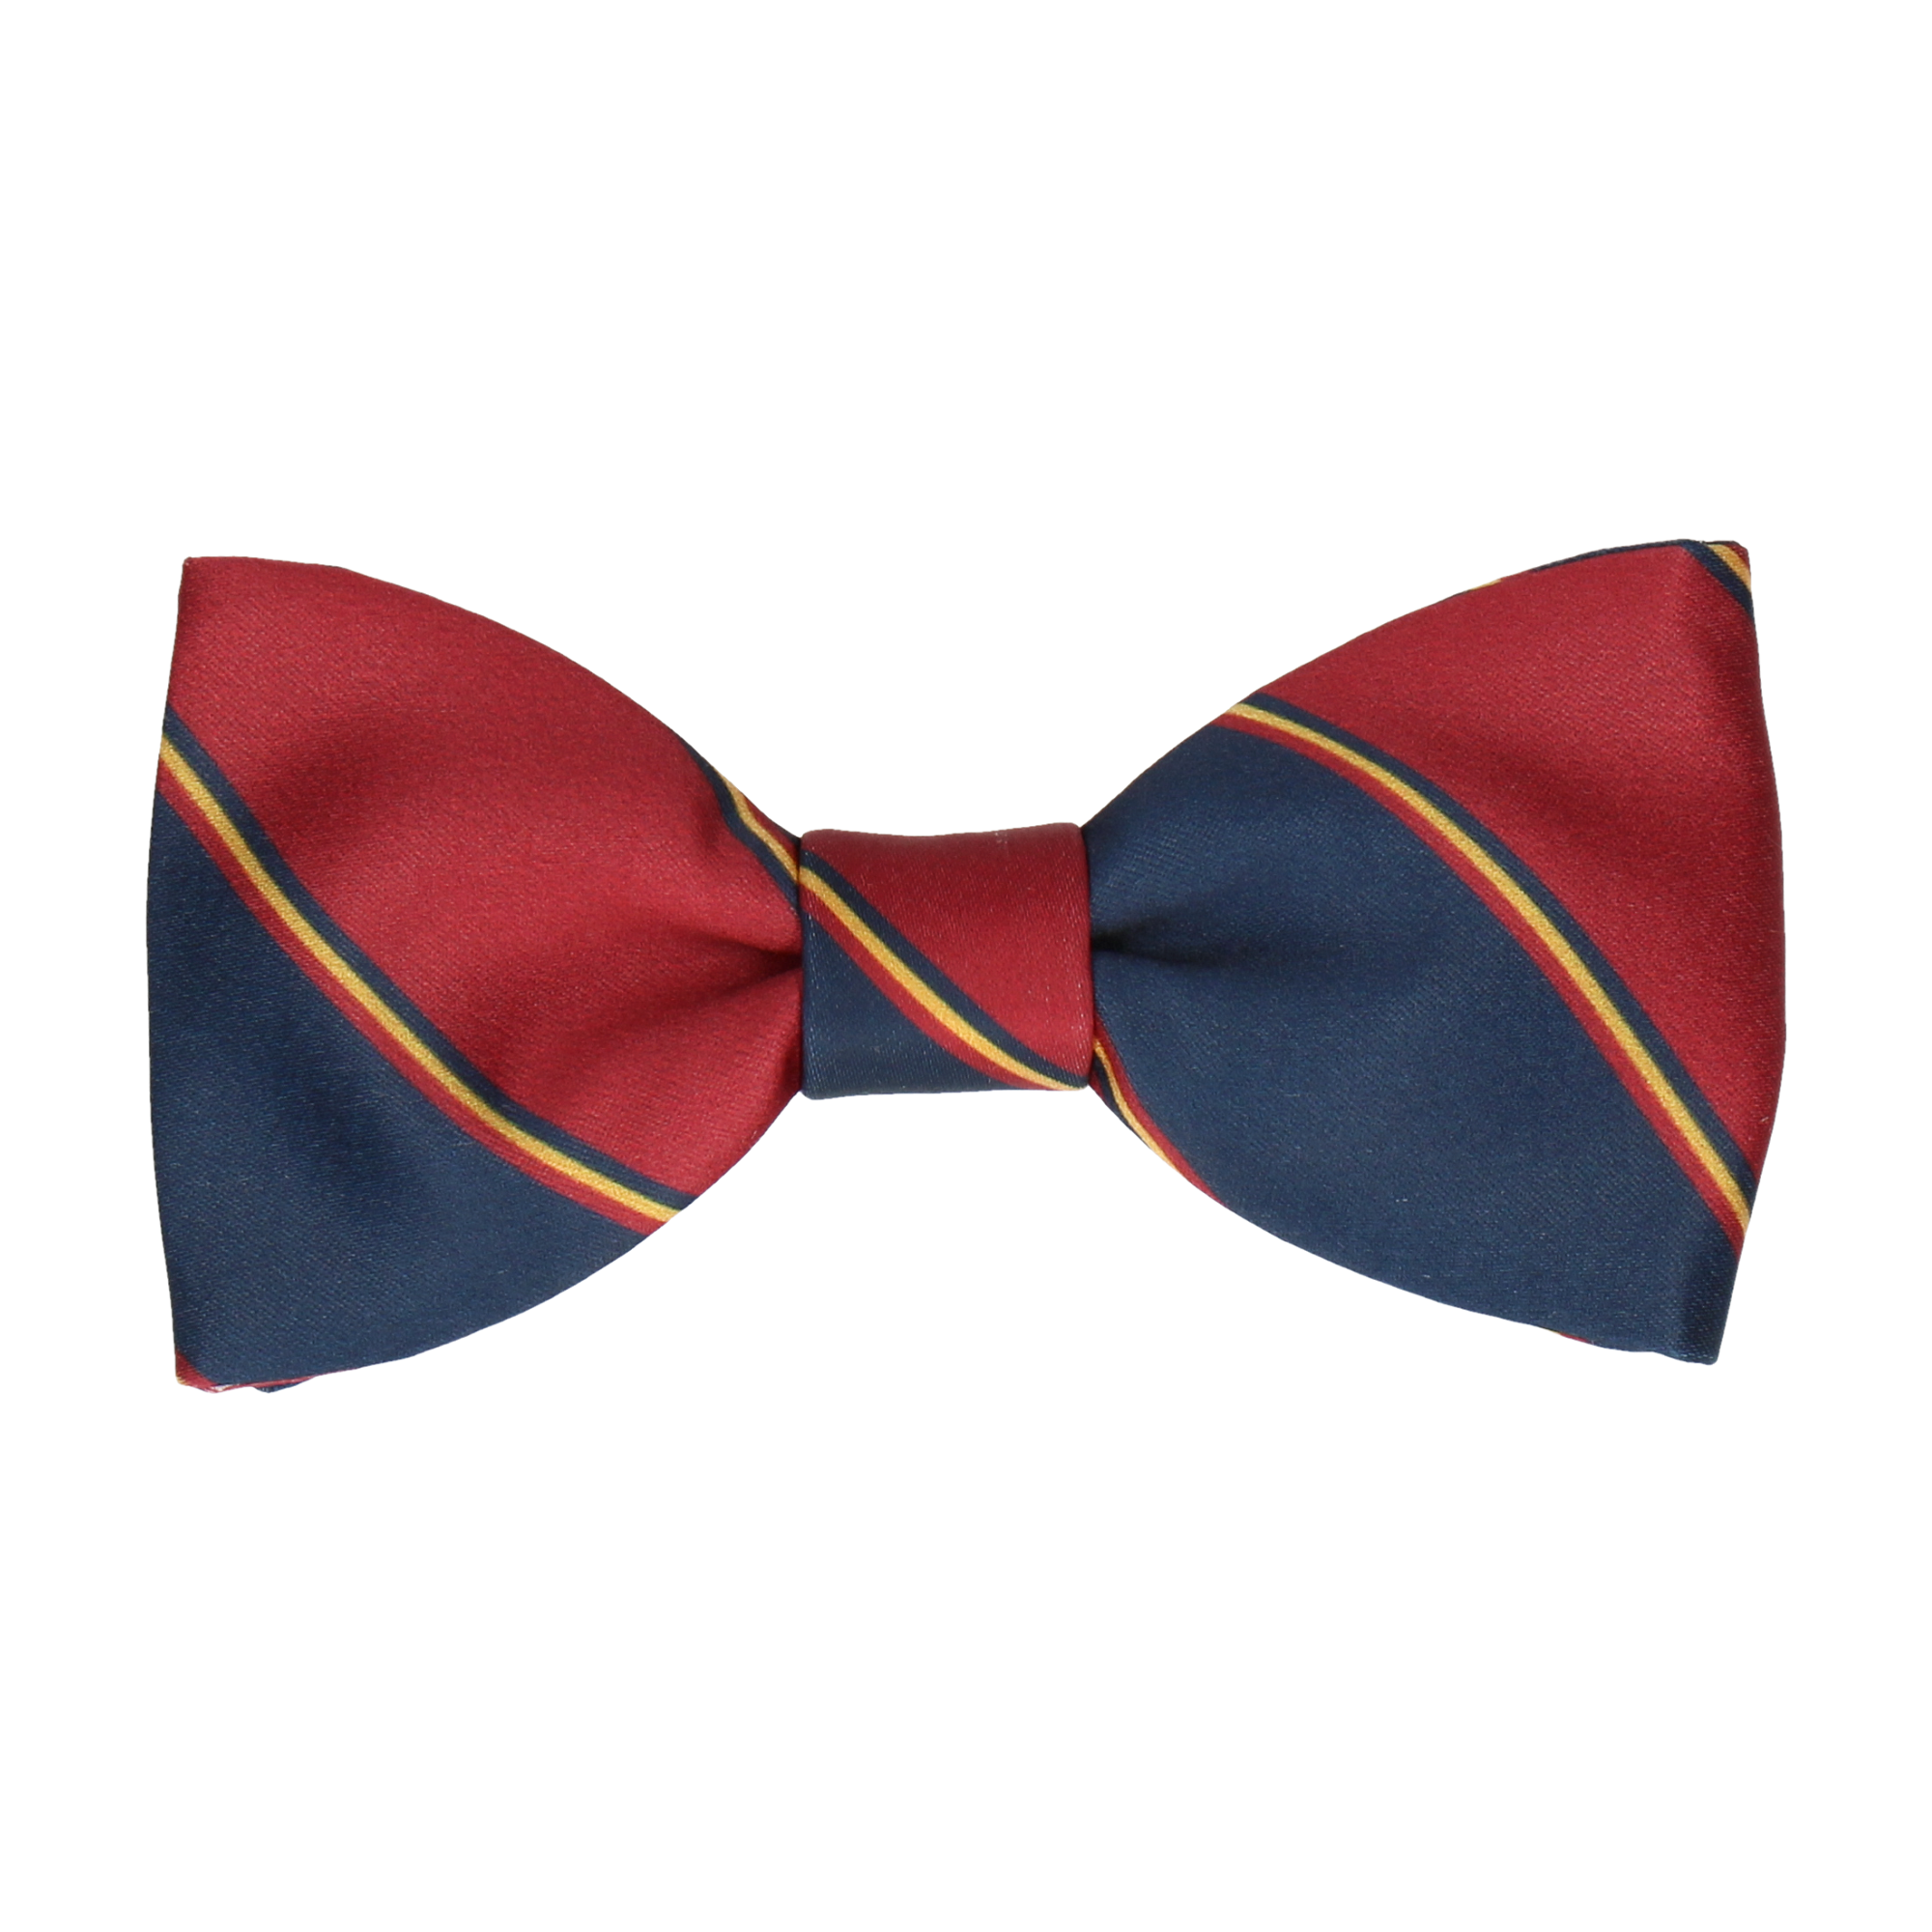 Arundel in Red & Navy Bow Tie